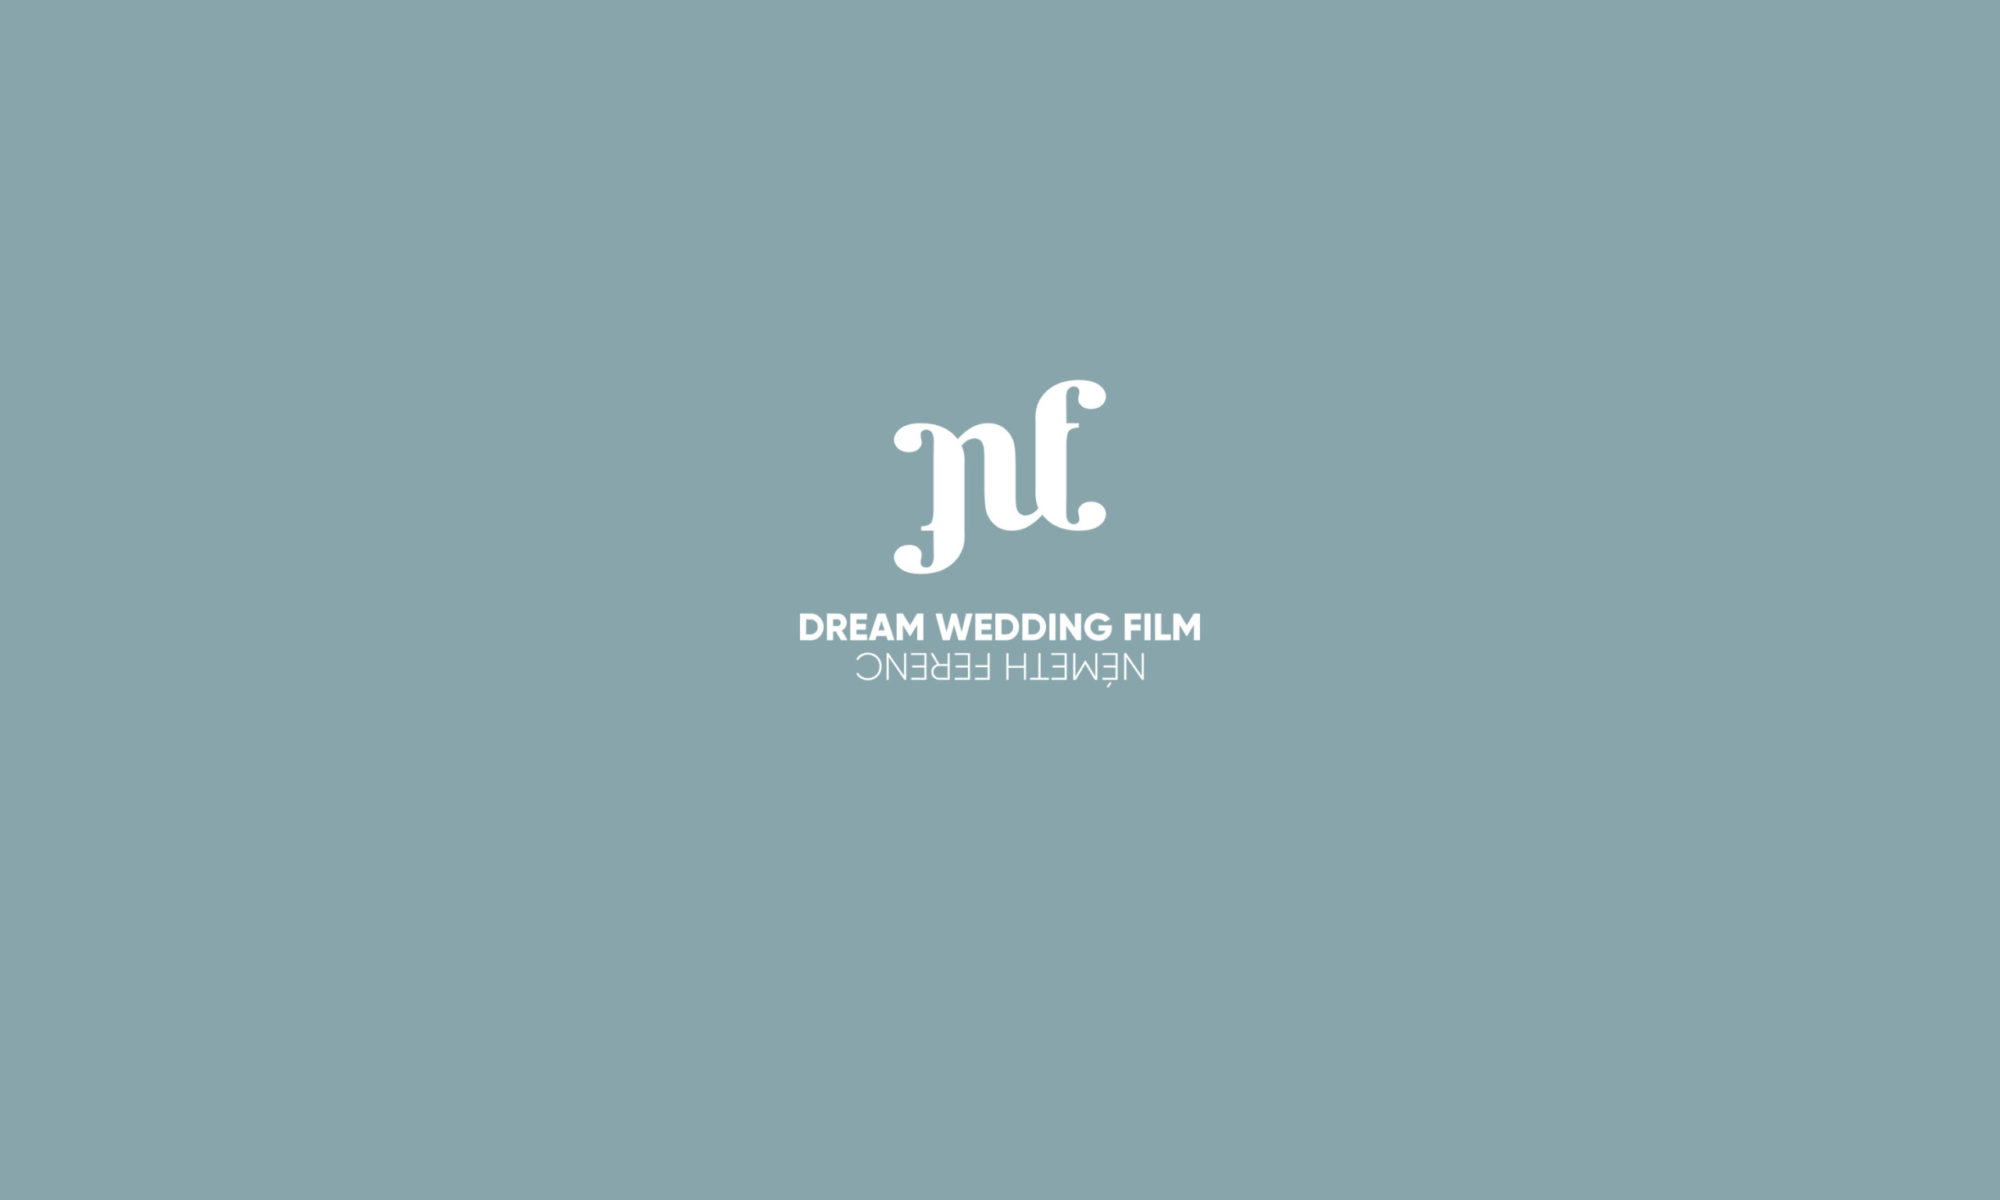 NF Videostudio - Dream wedding film